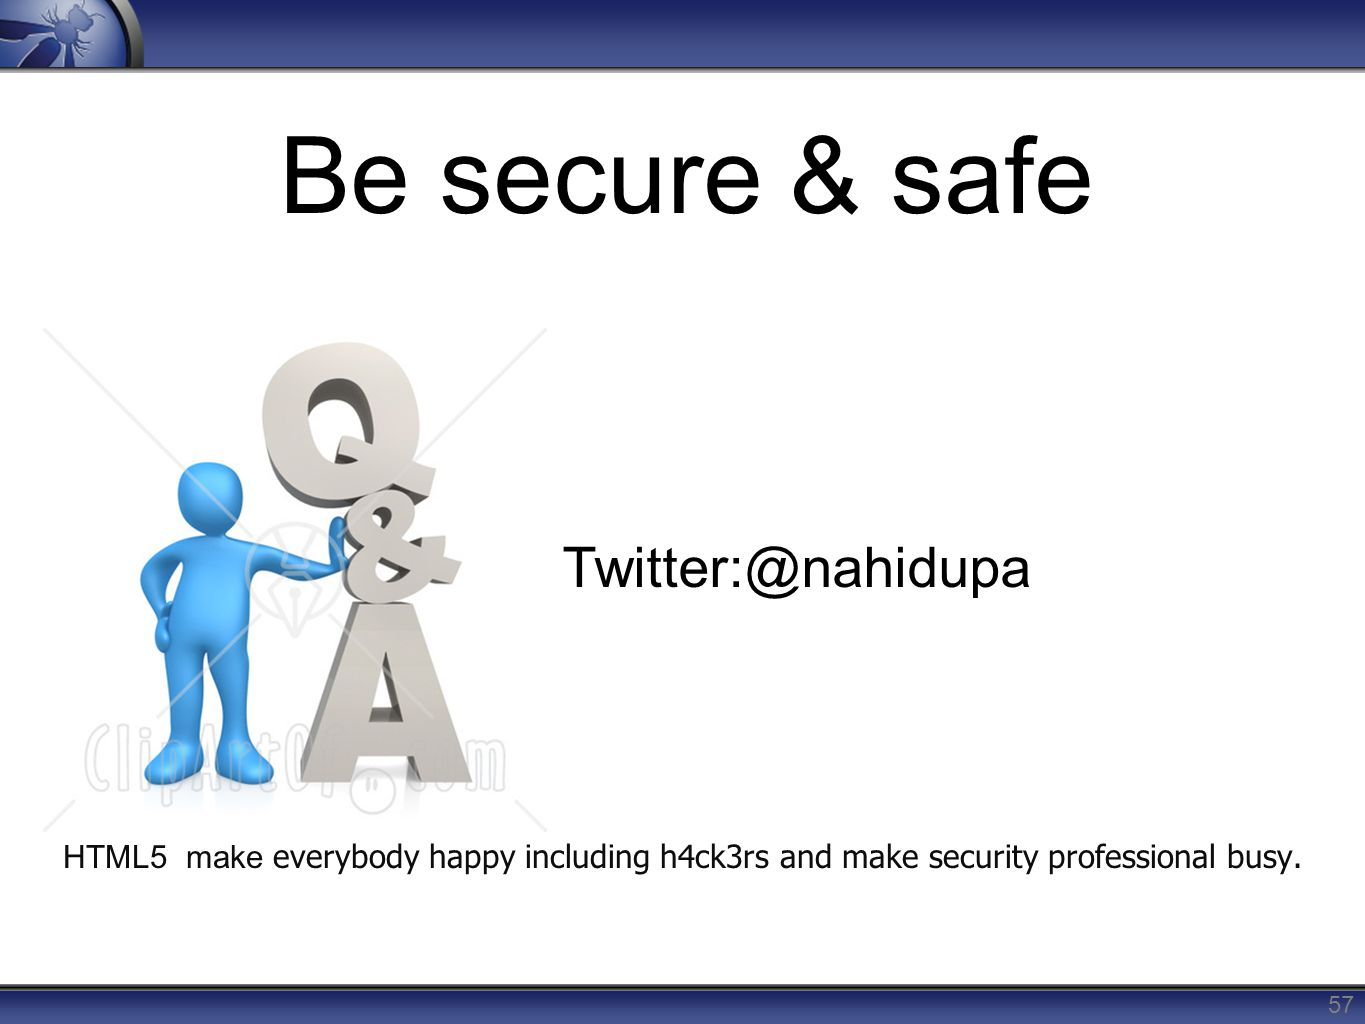 Be secure & safe Twitter:@nahidupa